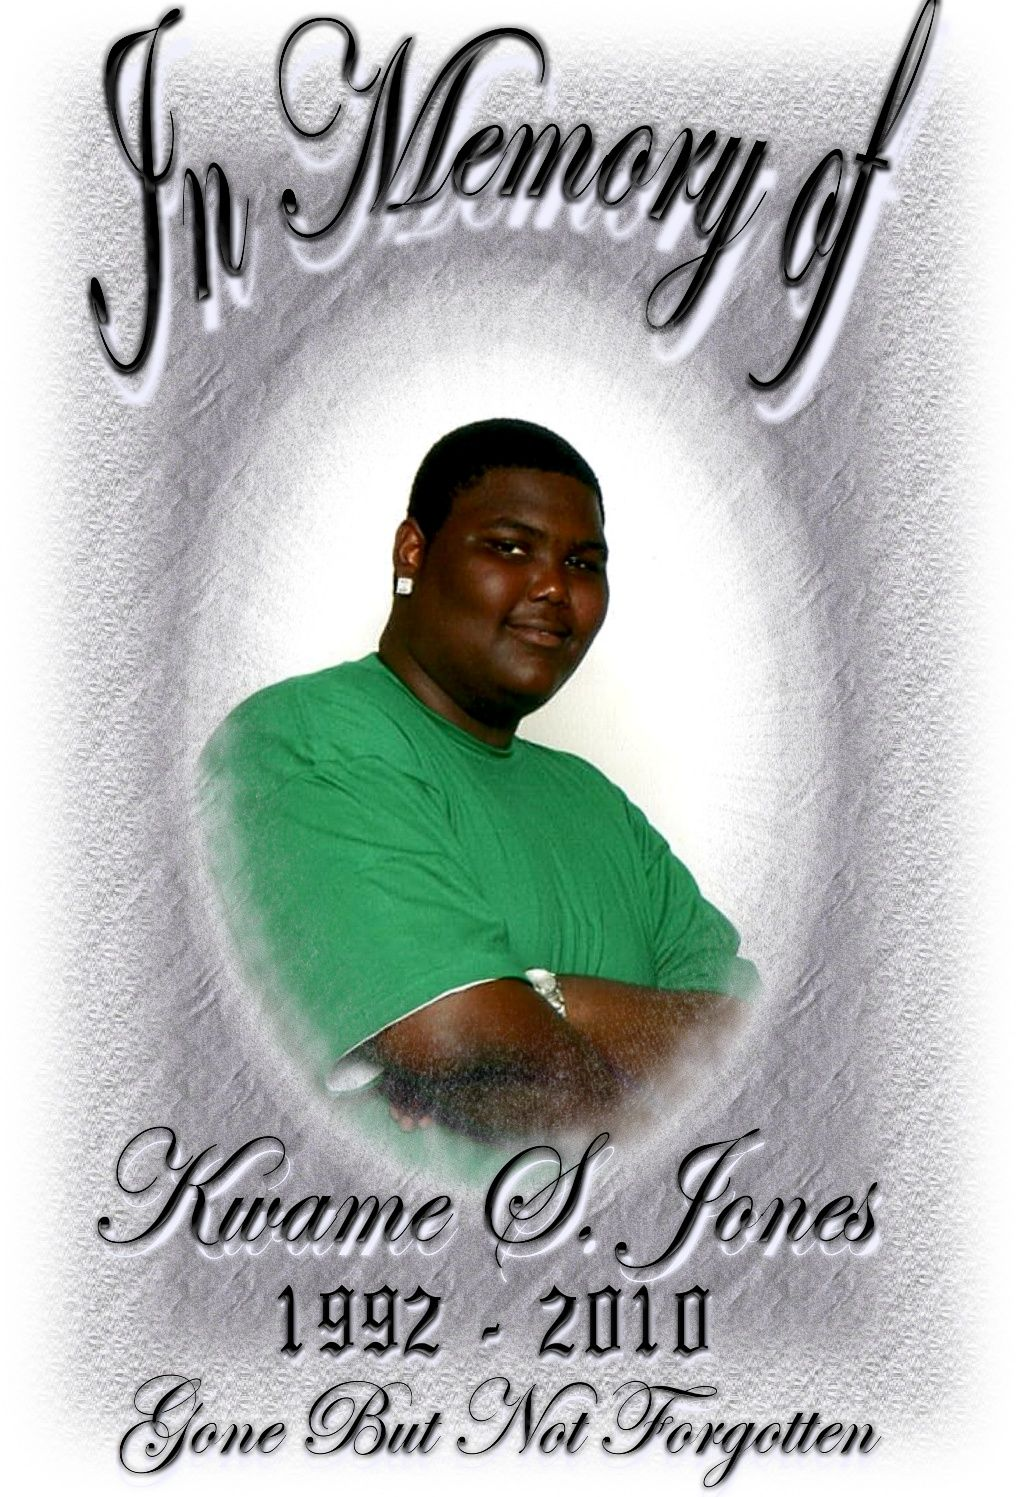 Rest In Peace Shirt Designs The Image